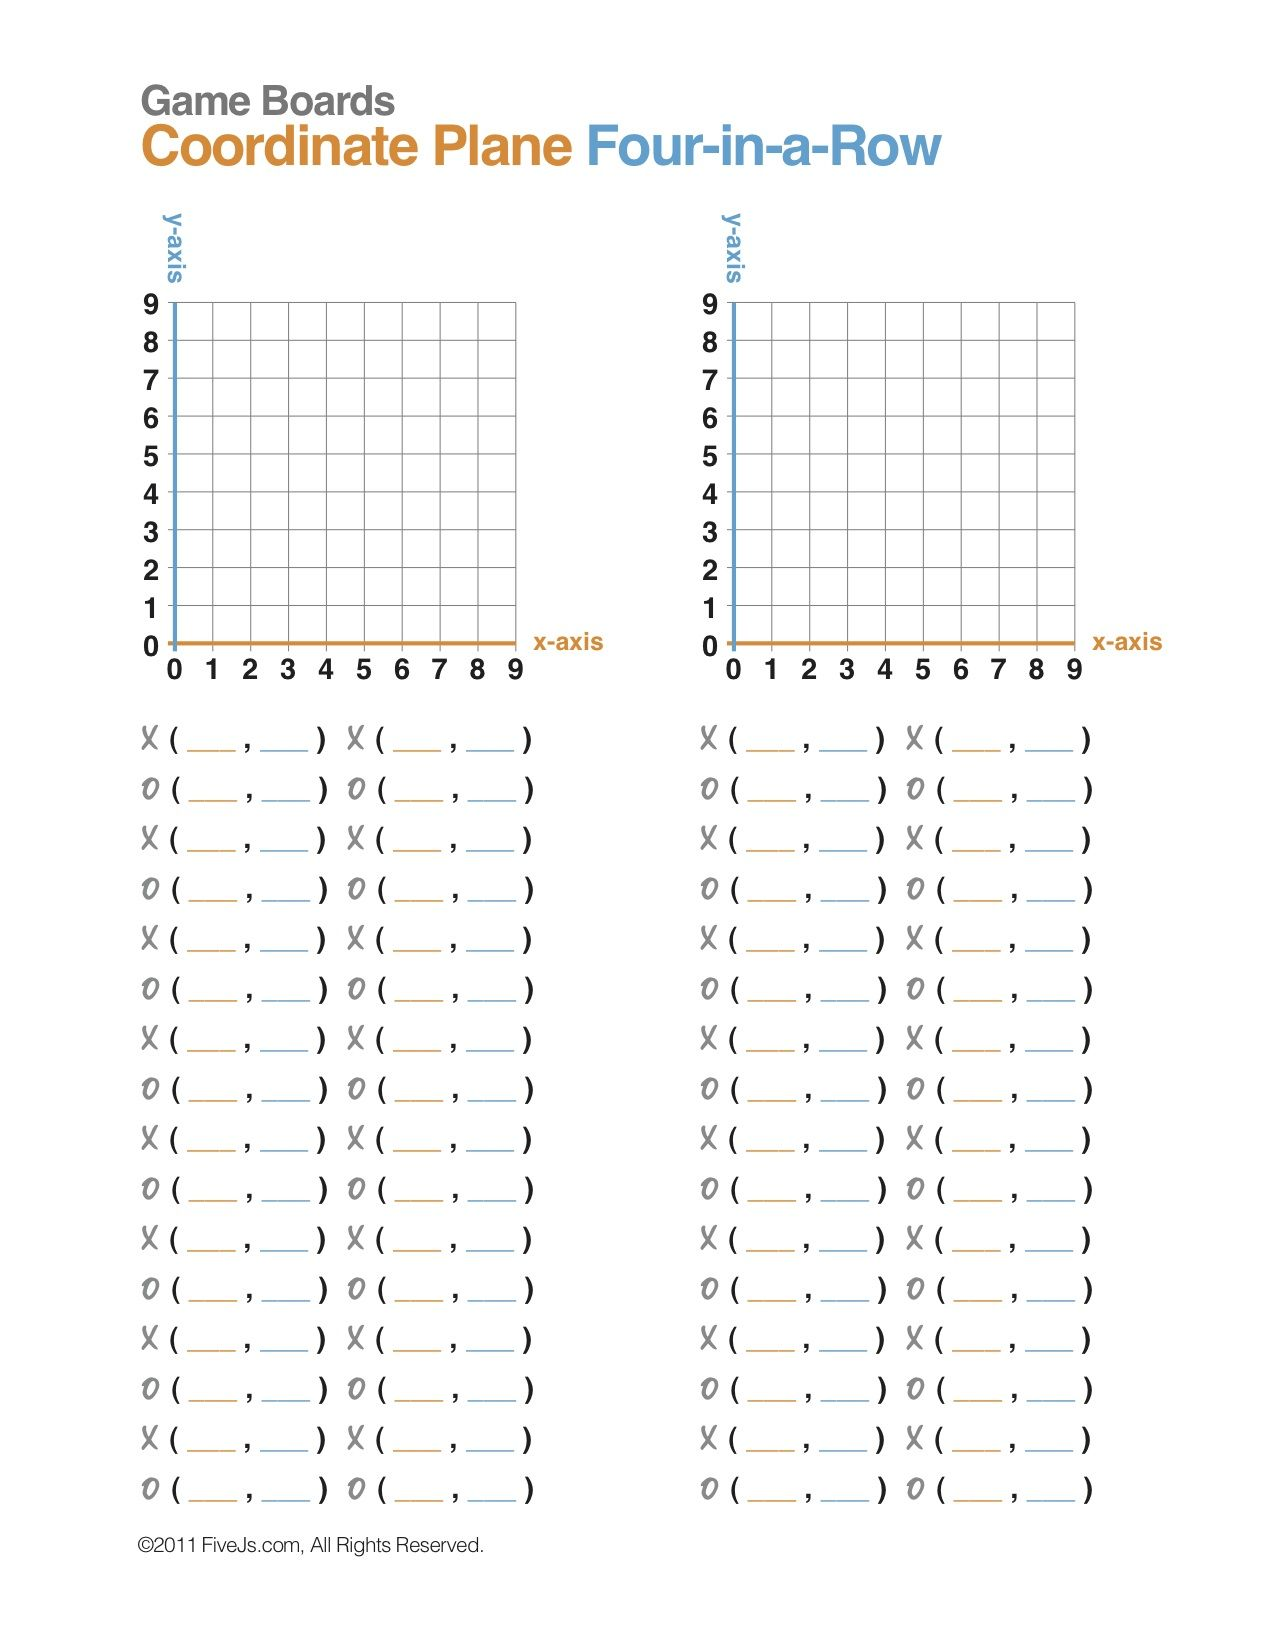 Coordinate Plane Math Game Free Download